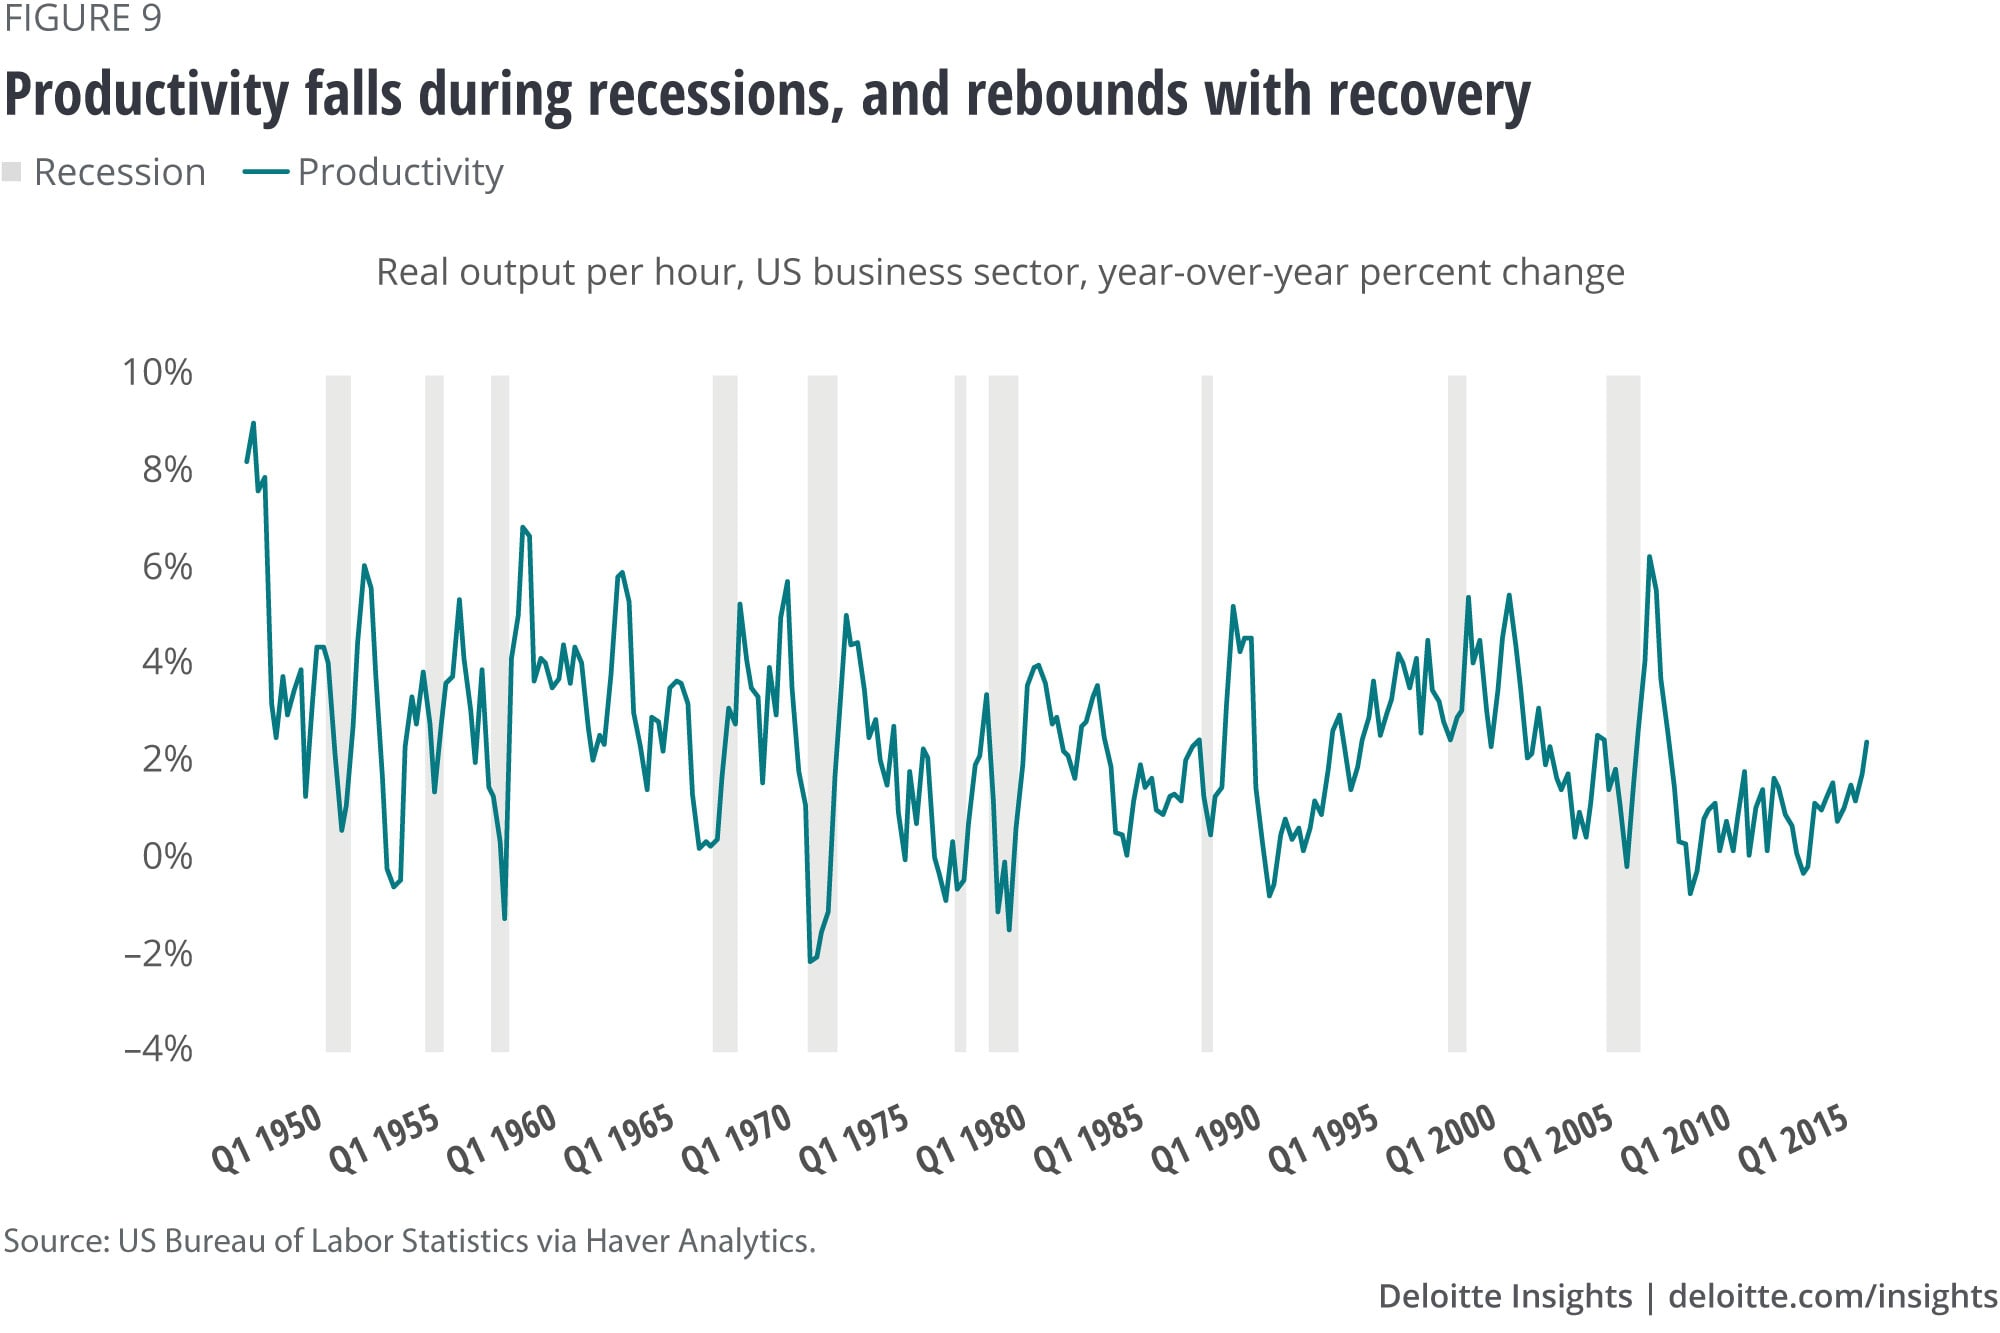 Productivity falls during recessions and rebounds with recovery